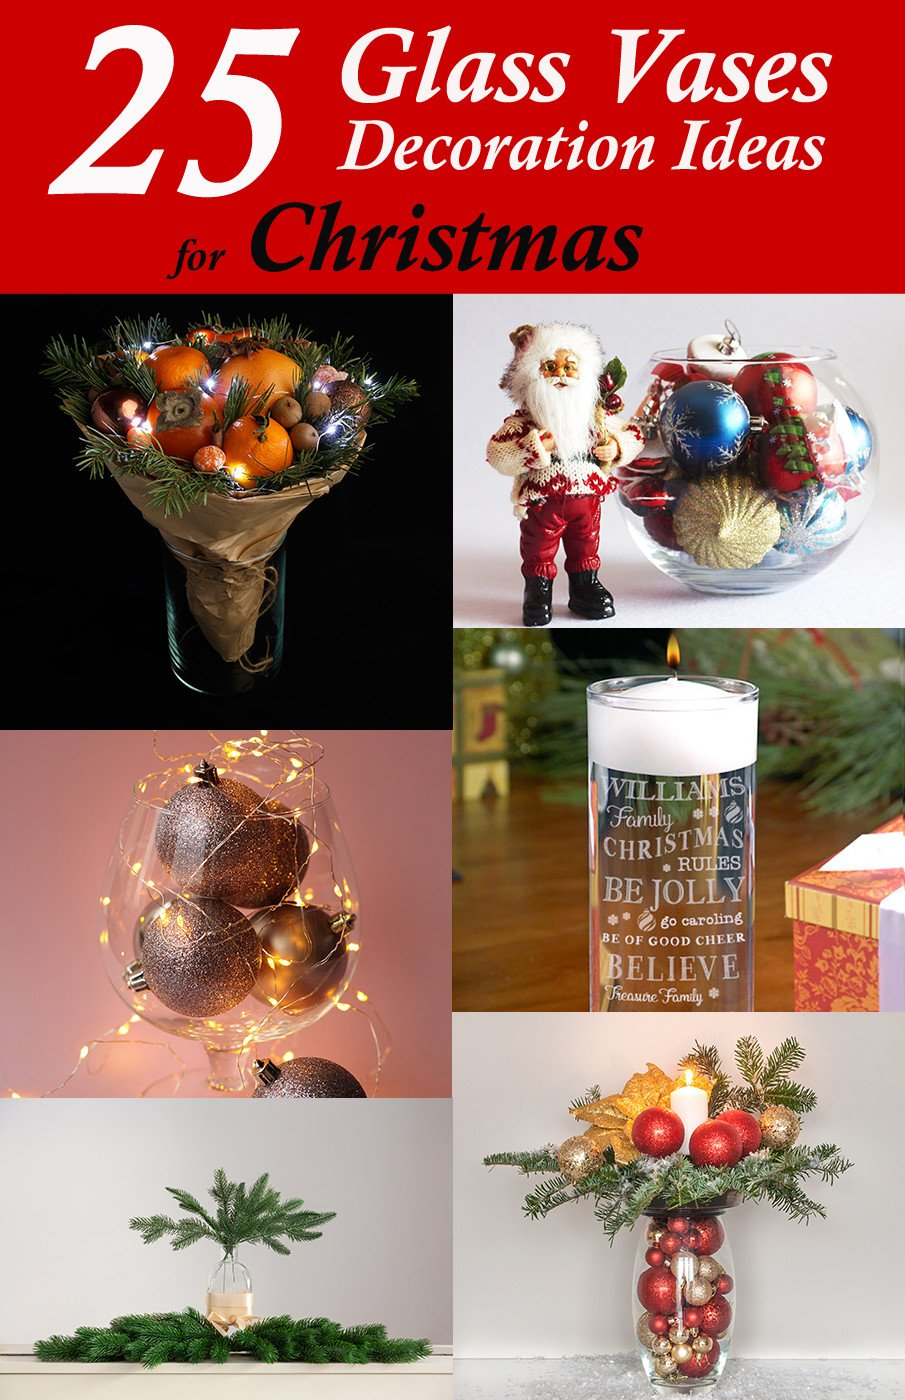 Glass vases decoration ideas for Christmas